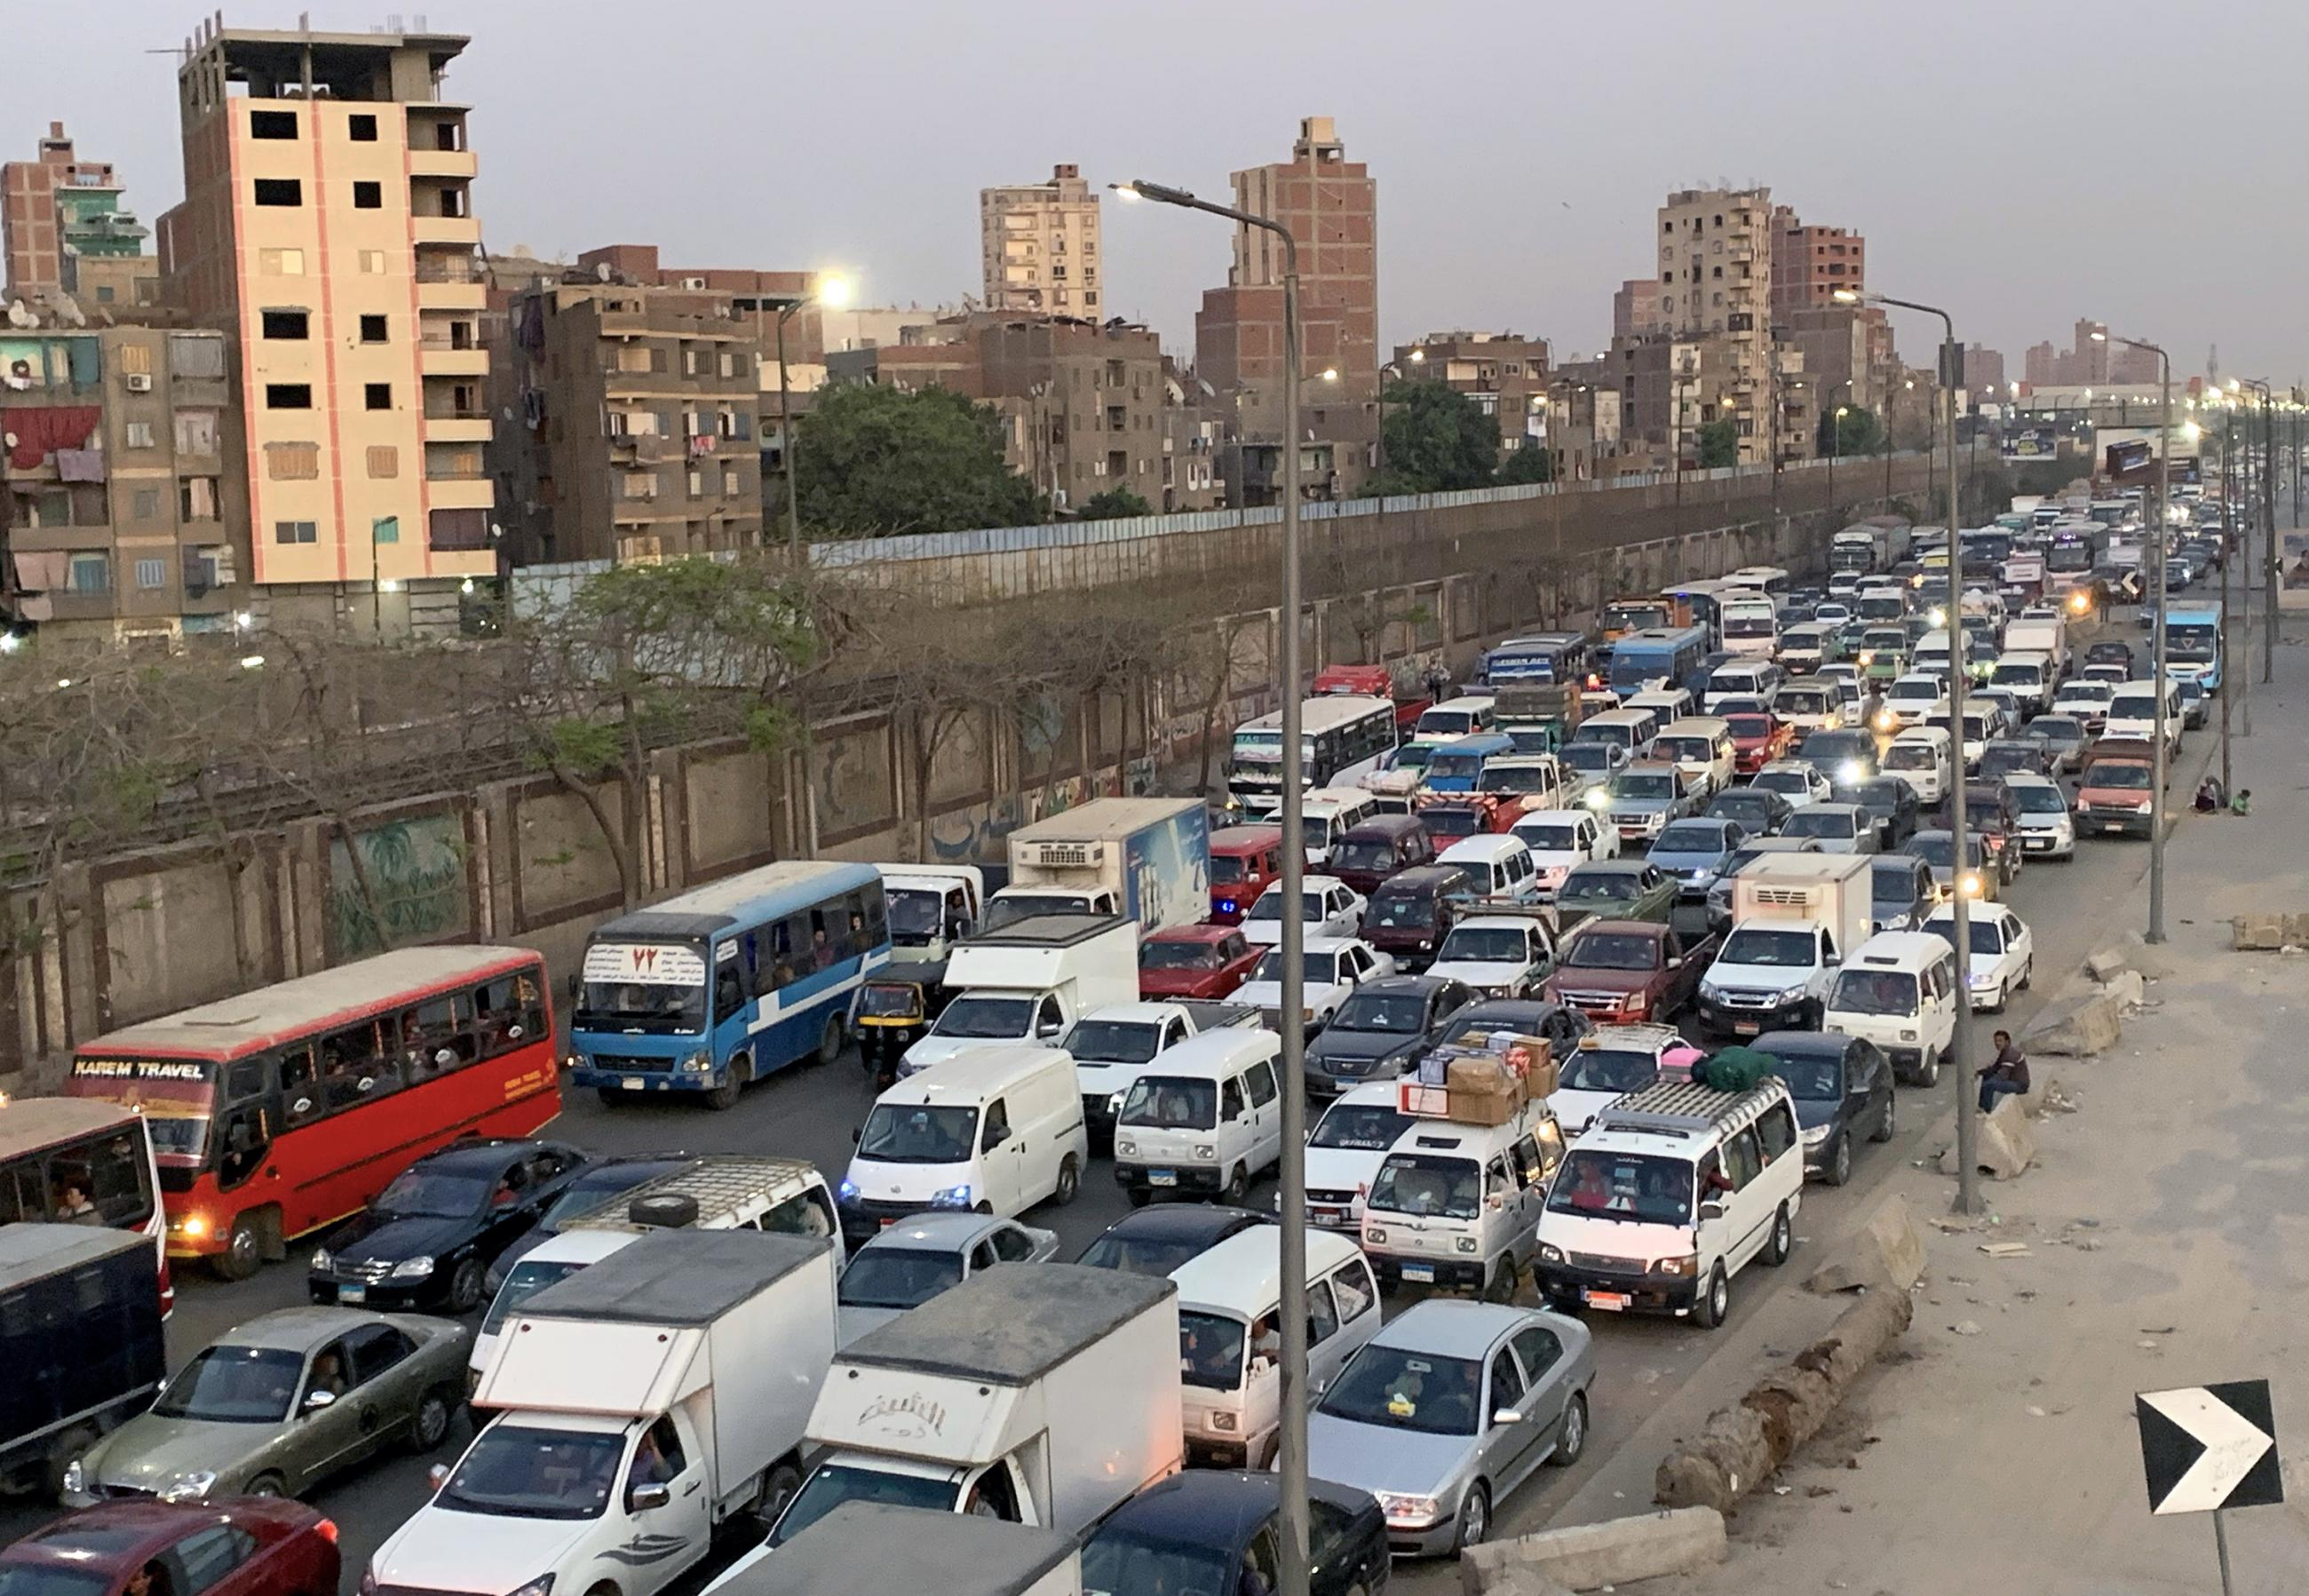 The photo shows a dusty street packed with cars and trucks.